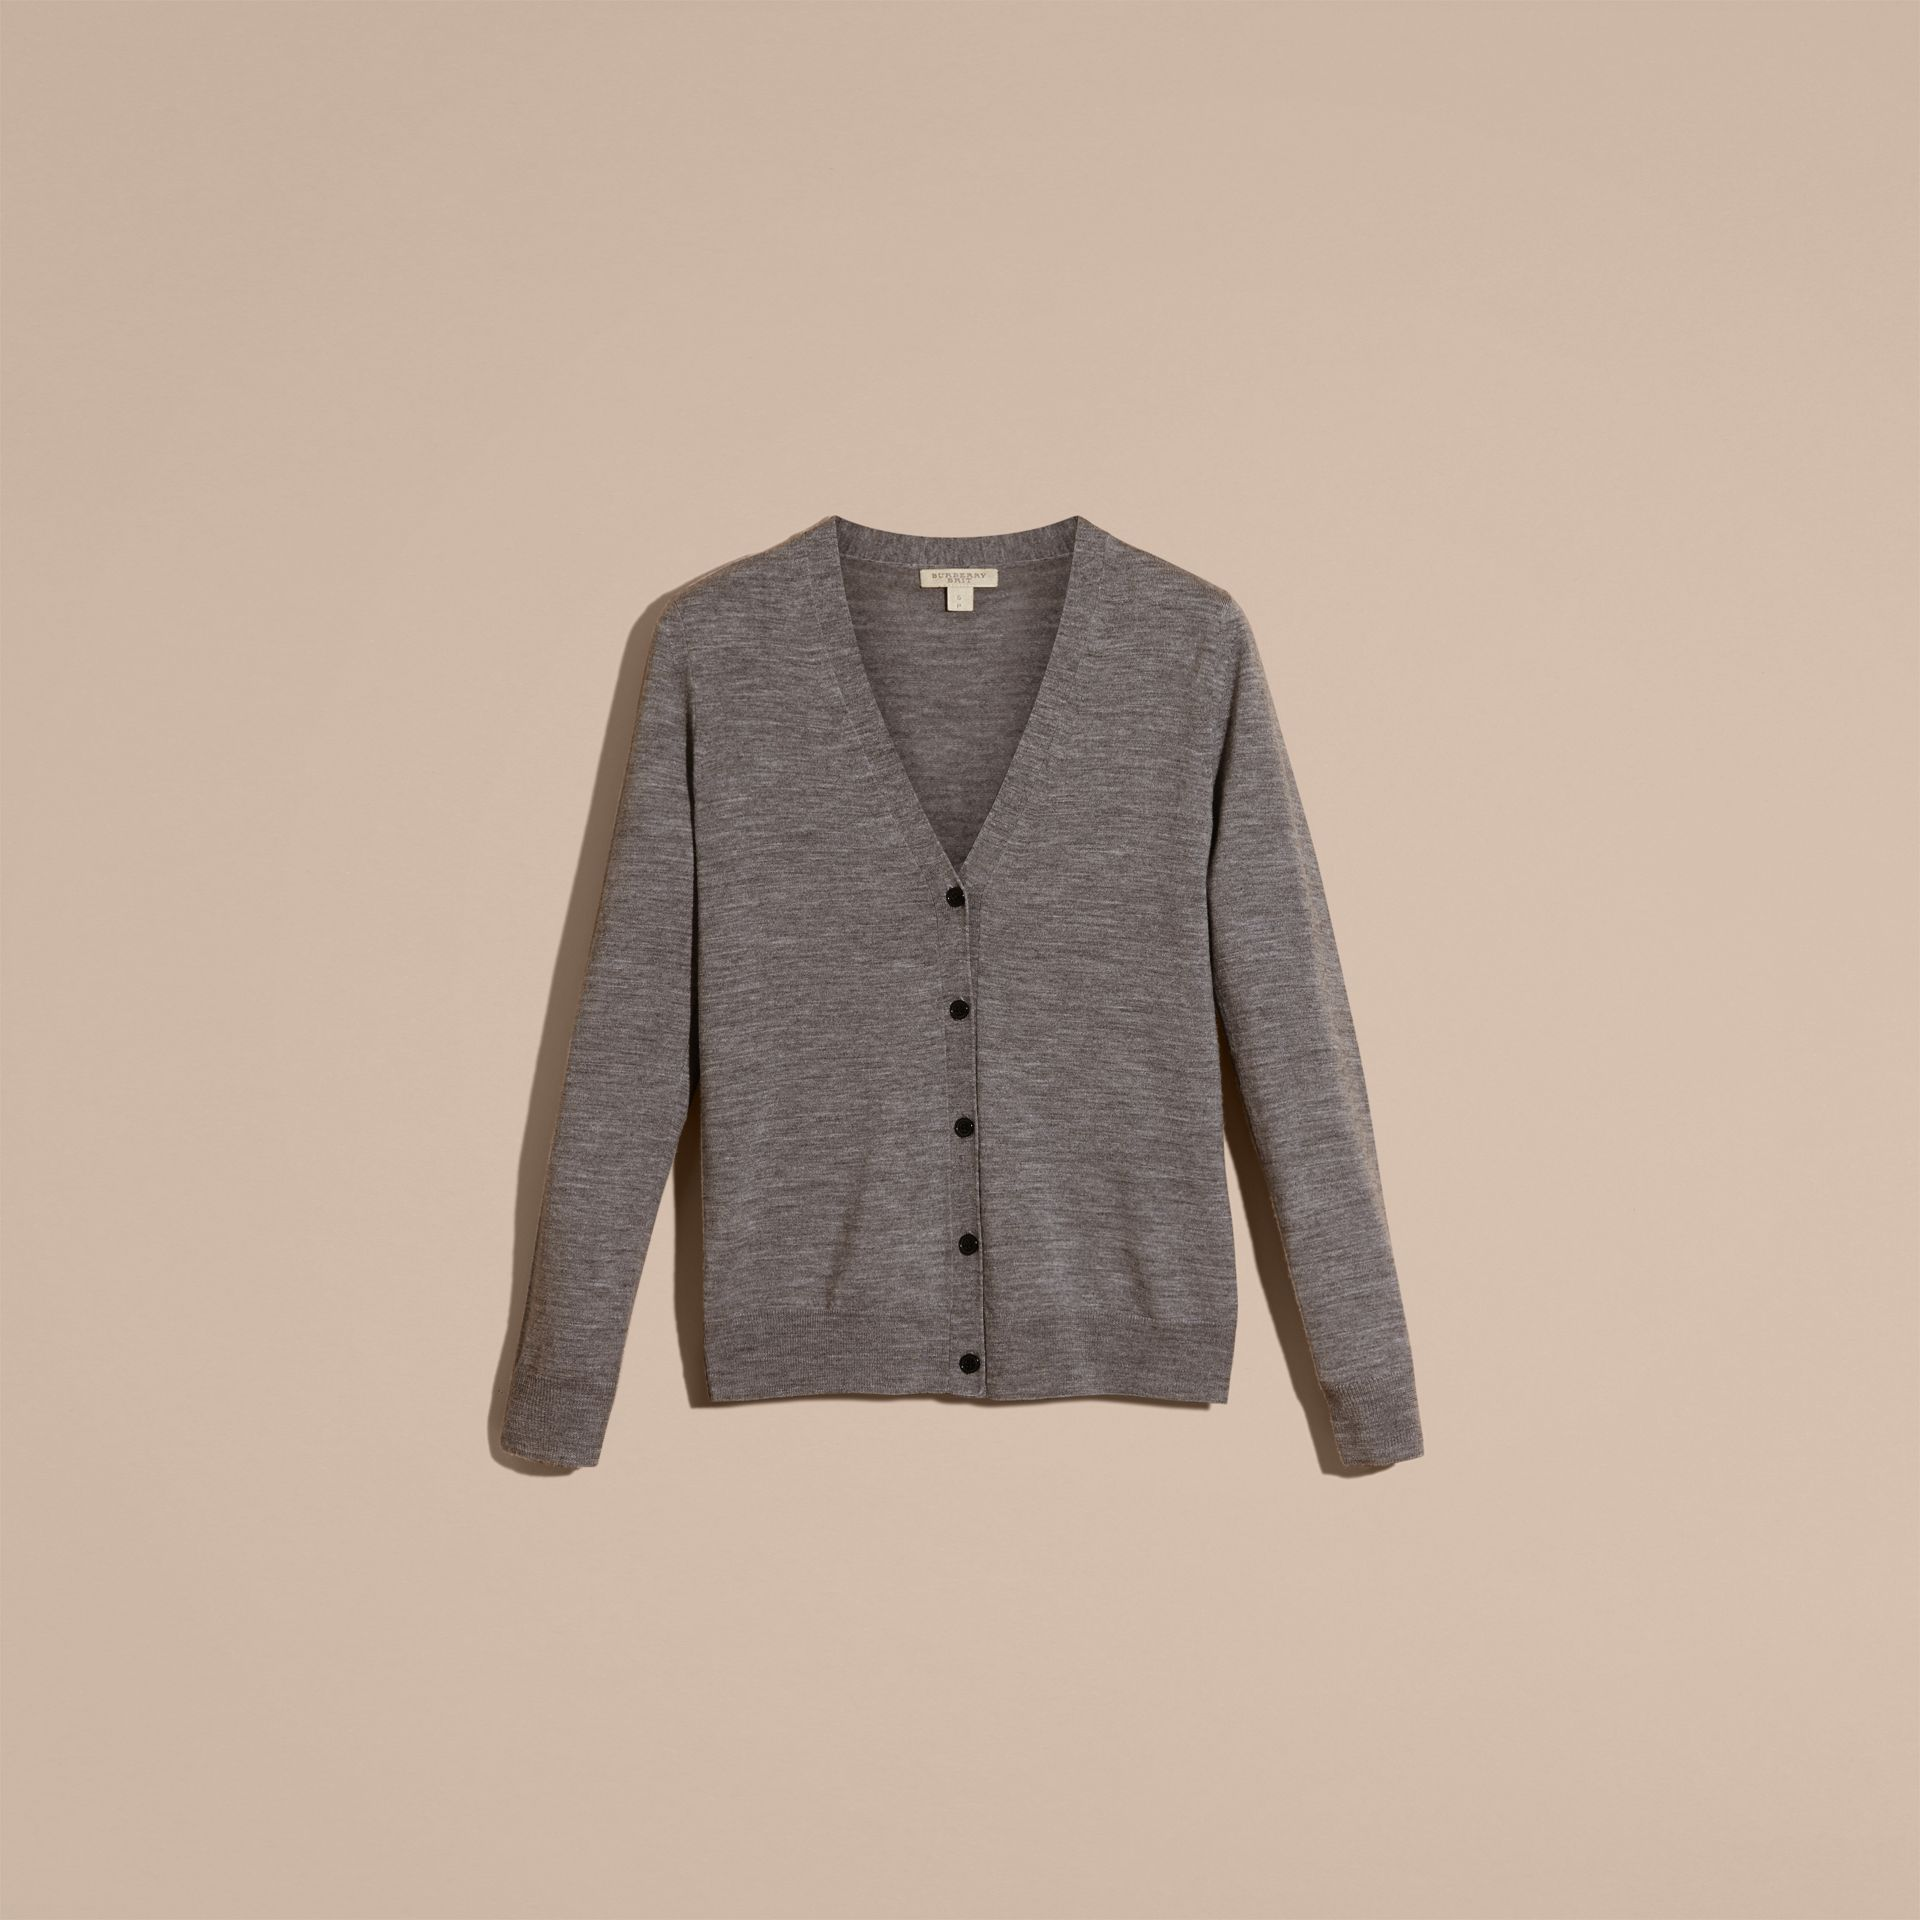 Check Detail Merino Wool Cardigan in Mid Grey Melange - Women | Burberry Australia - gallery image 4